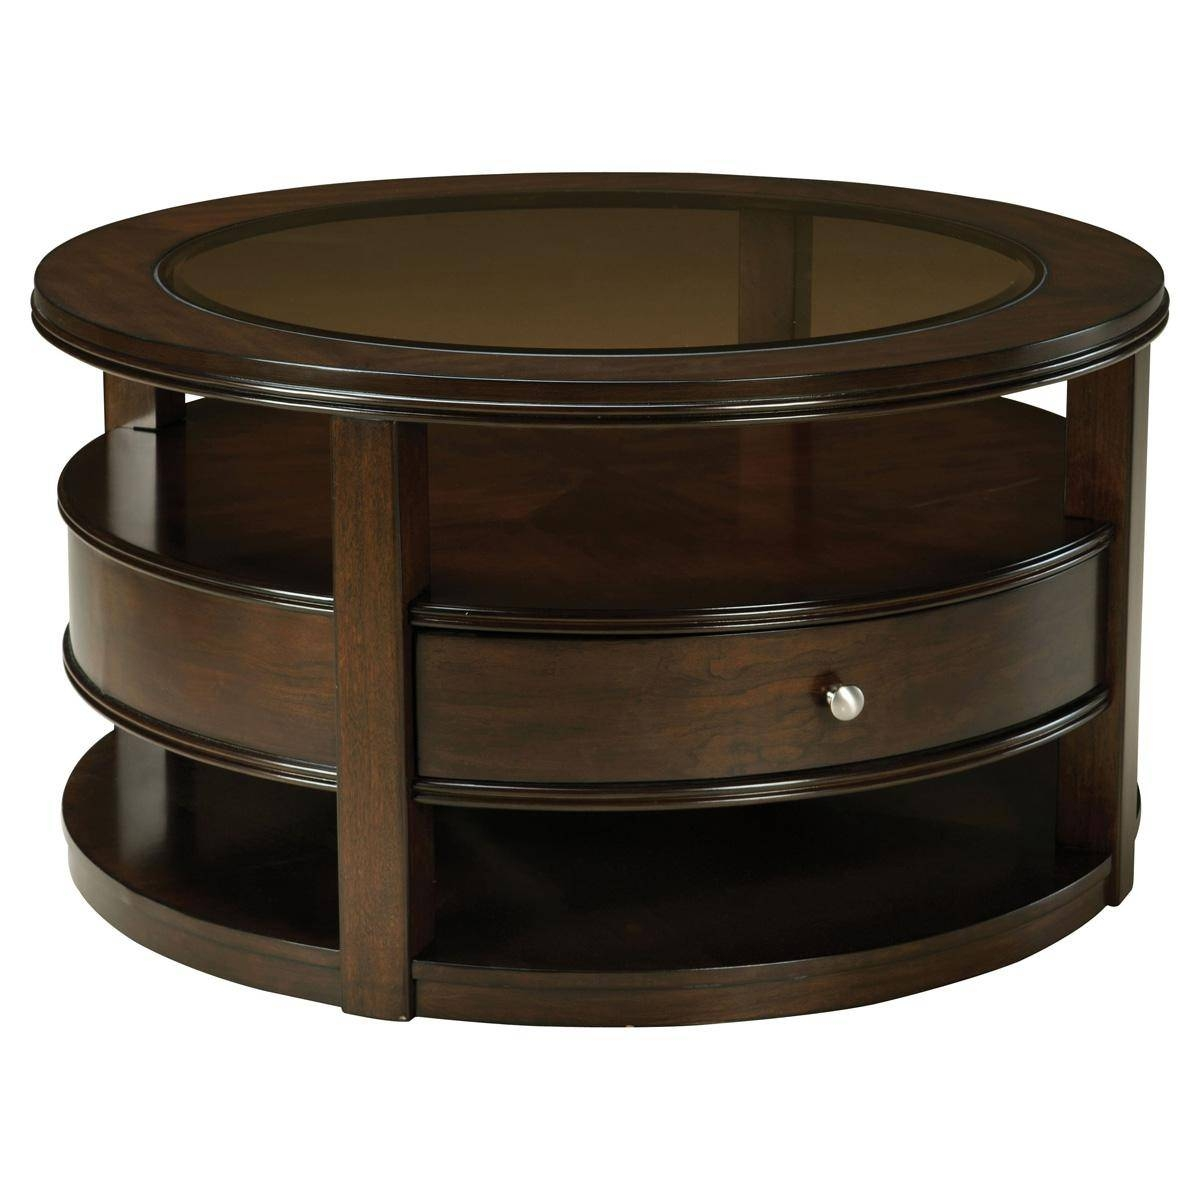 Round Coffee Table With Storage Furniture Dining Table Base Ideas for Coffee Tables With Basket Storage Underneath (Image 26 of 30)